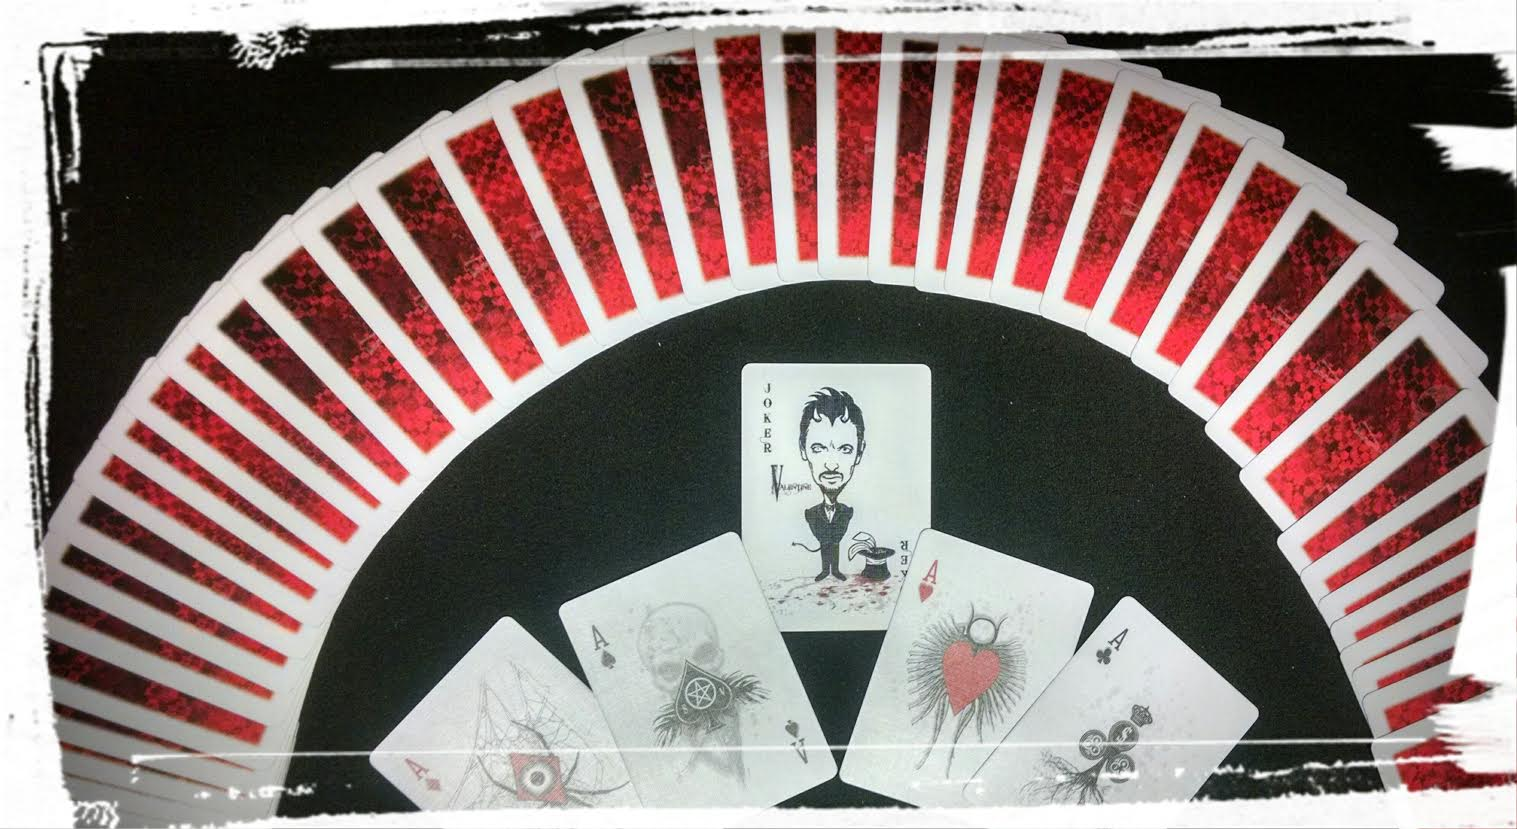 The V Deck by Steve Valentine